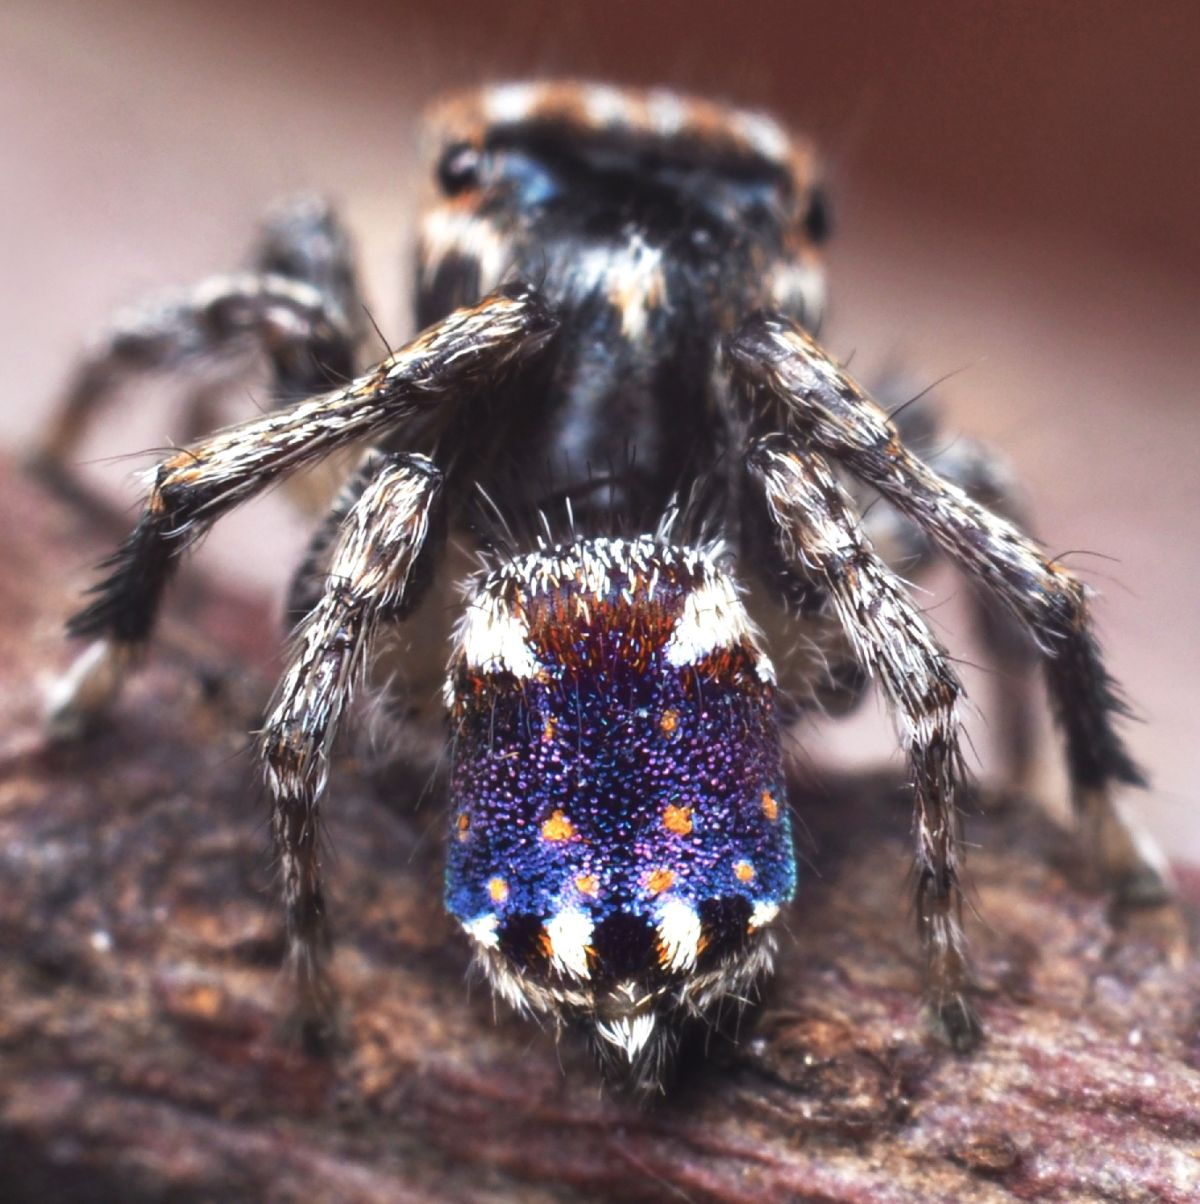 'Starry Night' replica found on peacock spider's butt - Livescience.com